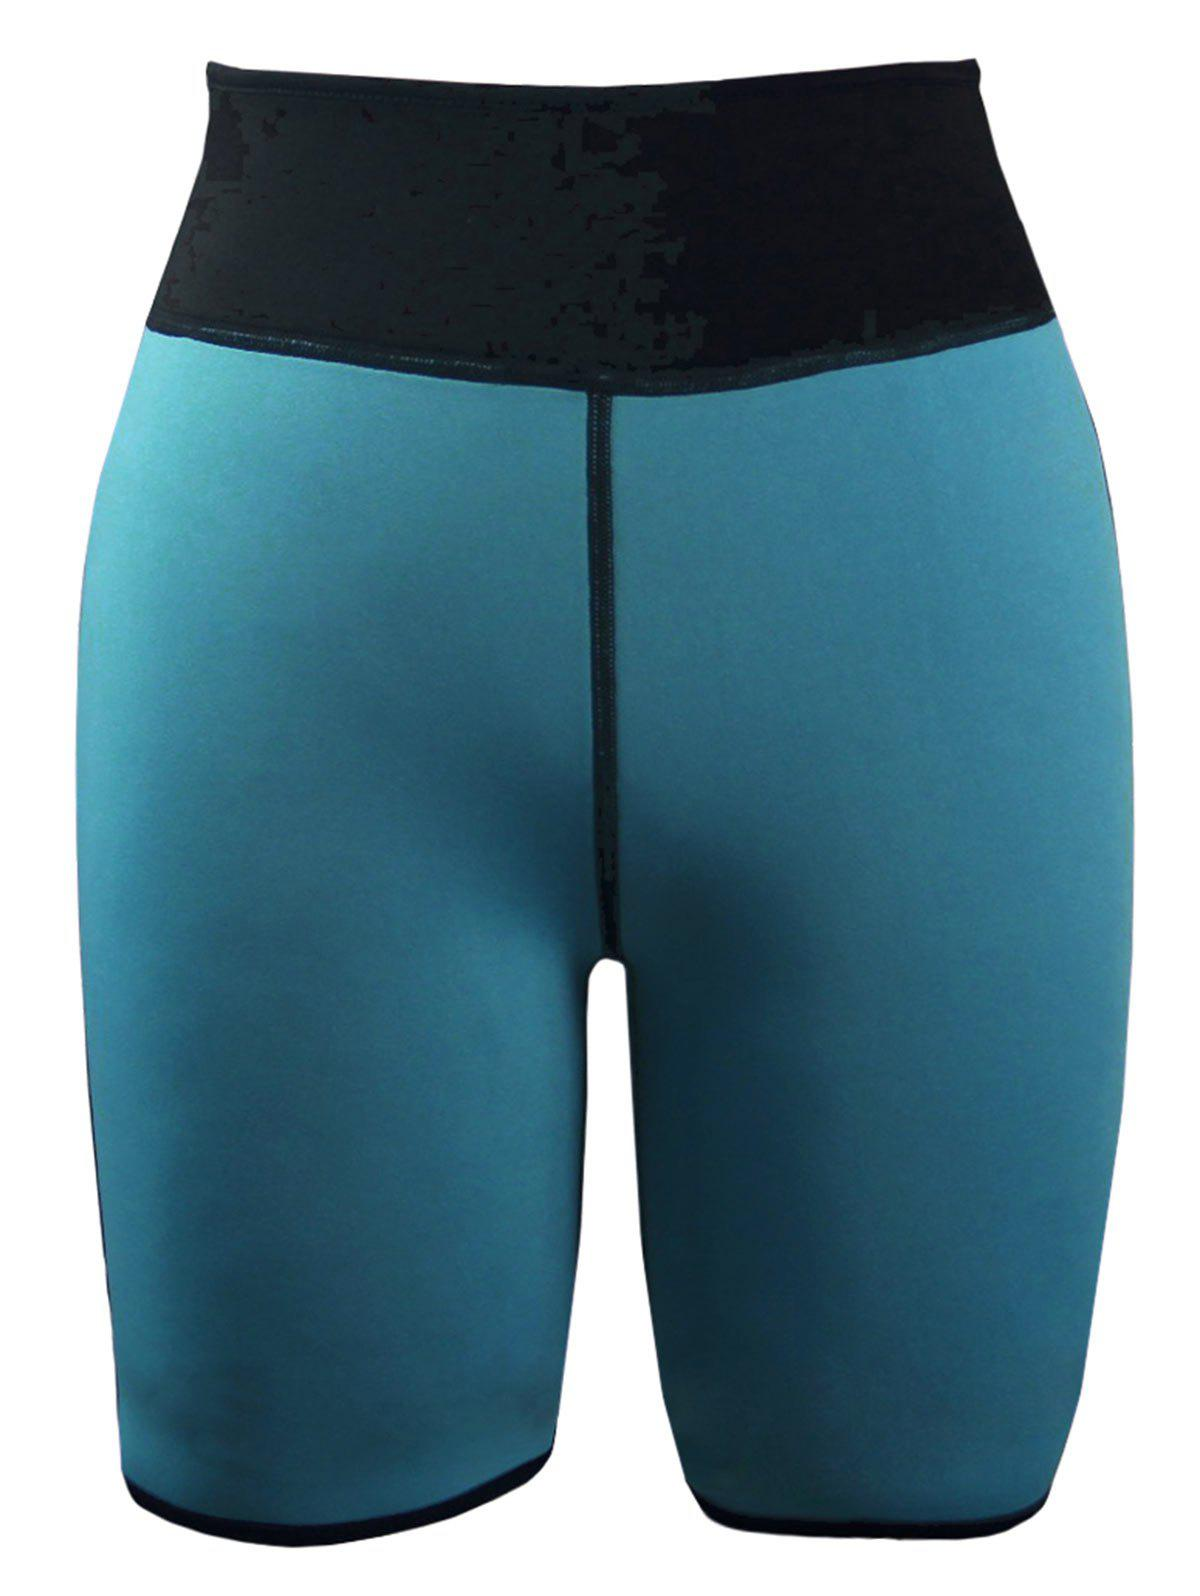 Color Block High Waist Neoprene Sport Shorts - MALACHITE GREEN M